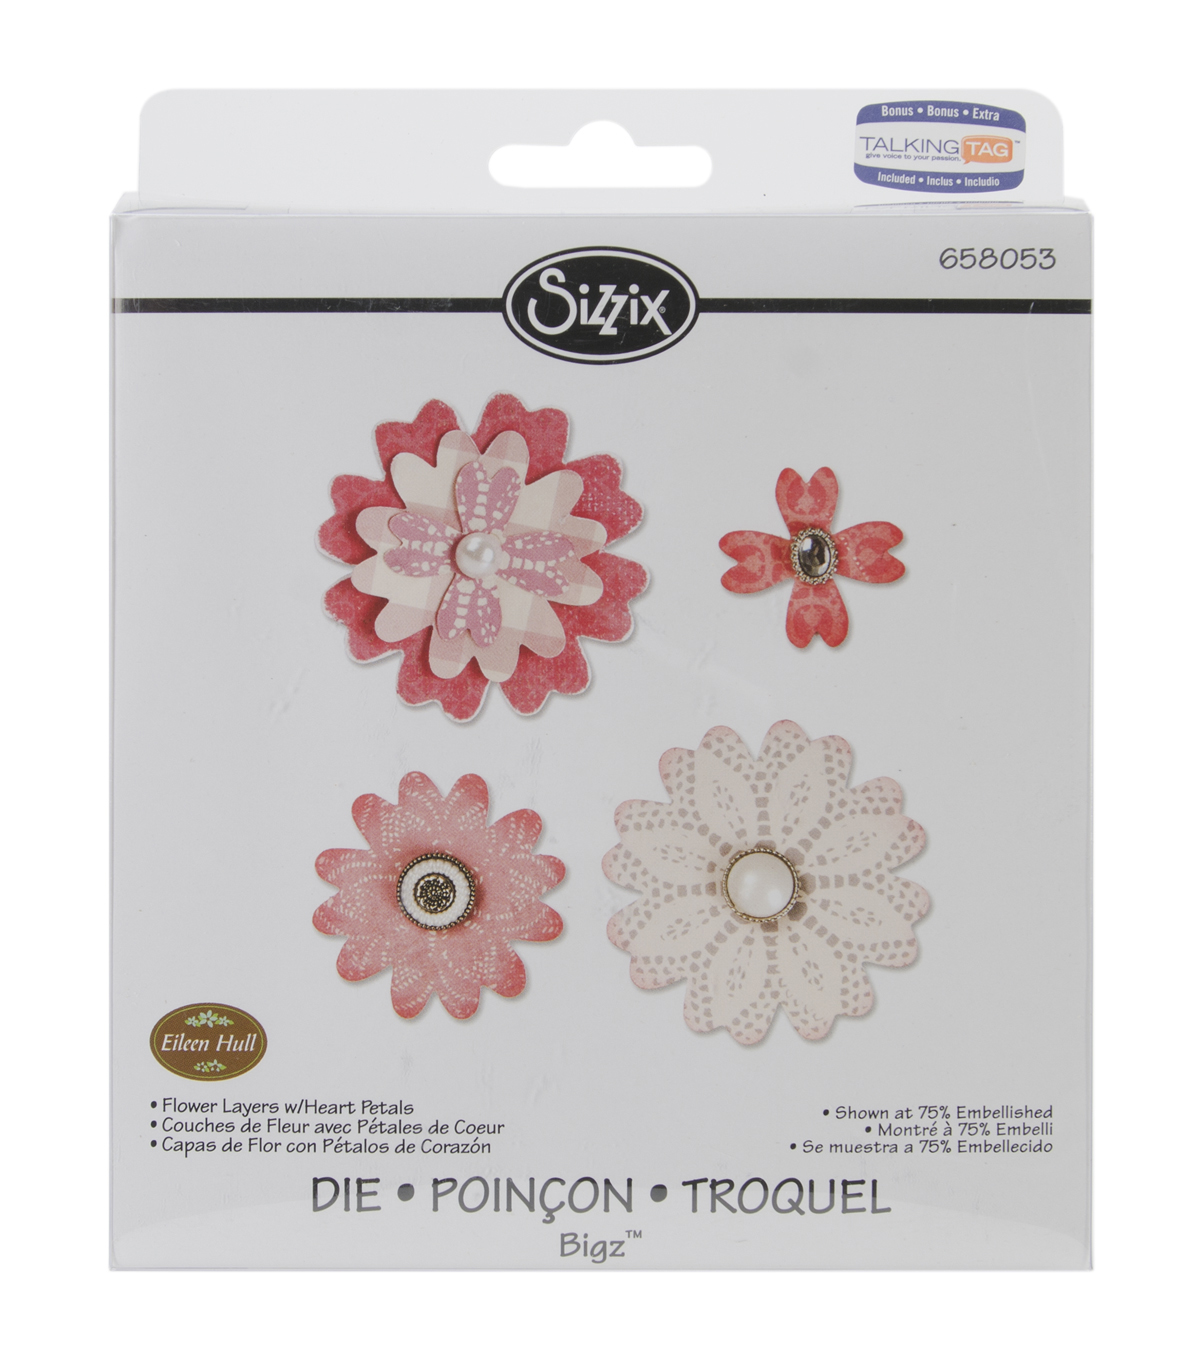 Sizzix Bigz Eileen Hull Die-Flower Layers with Heart Petals